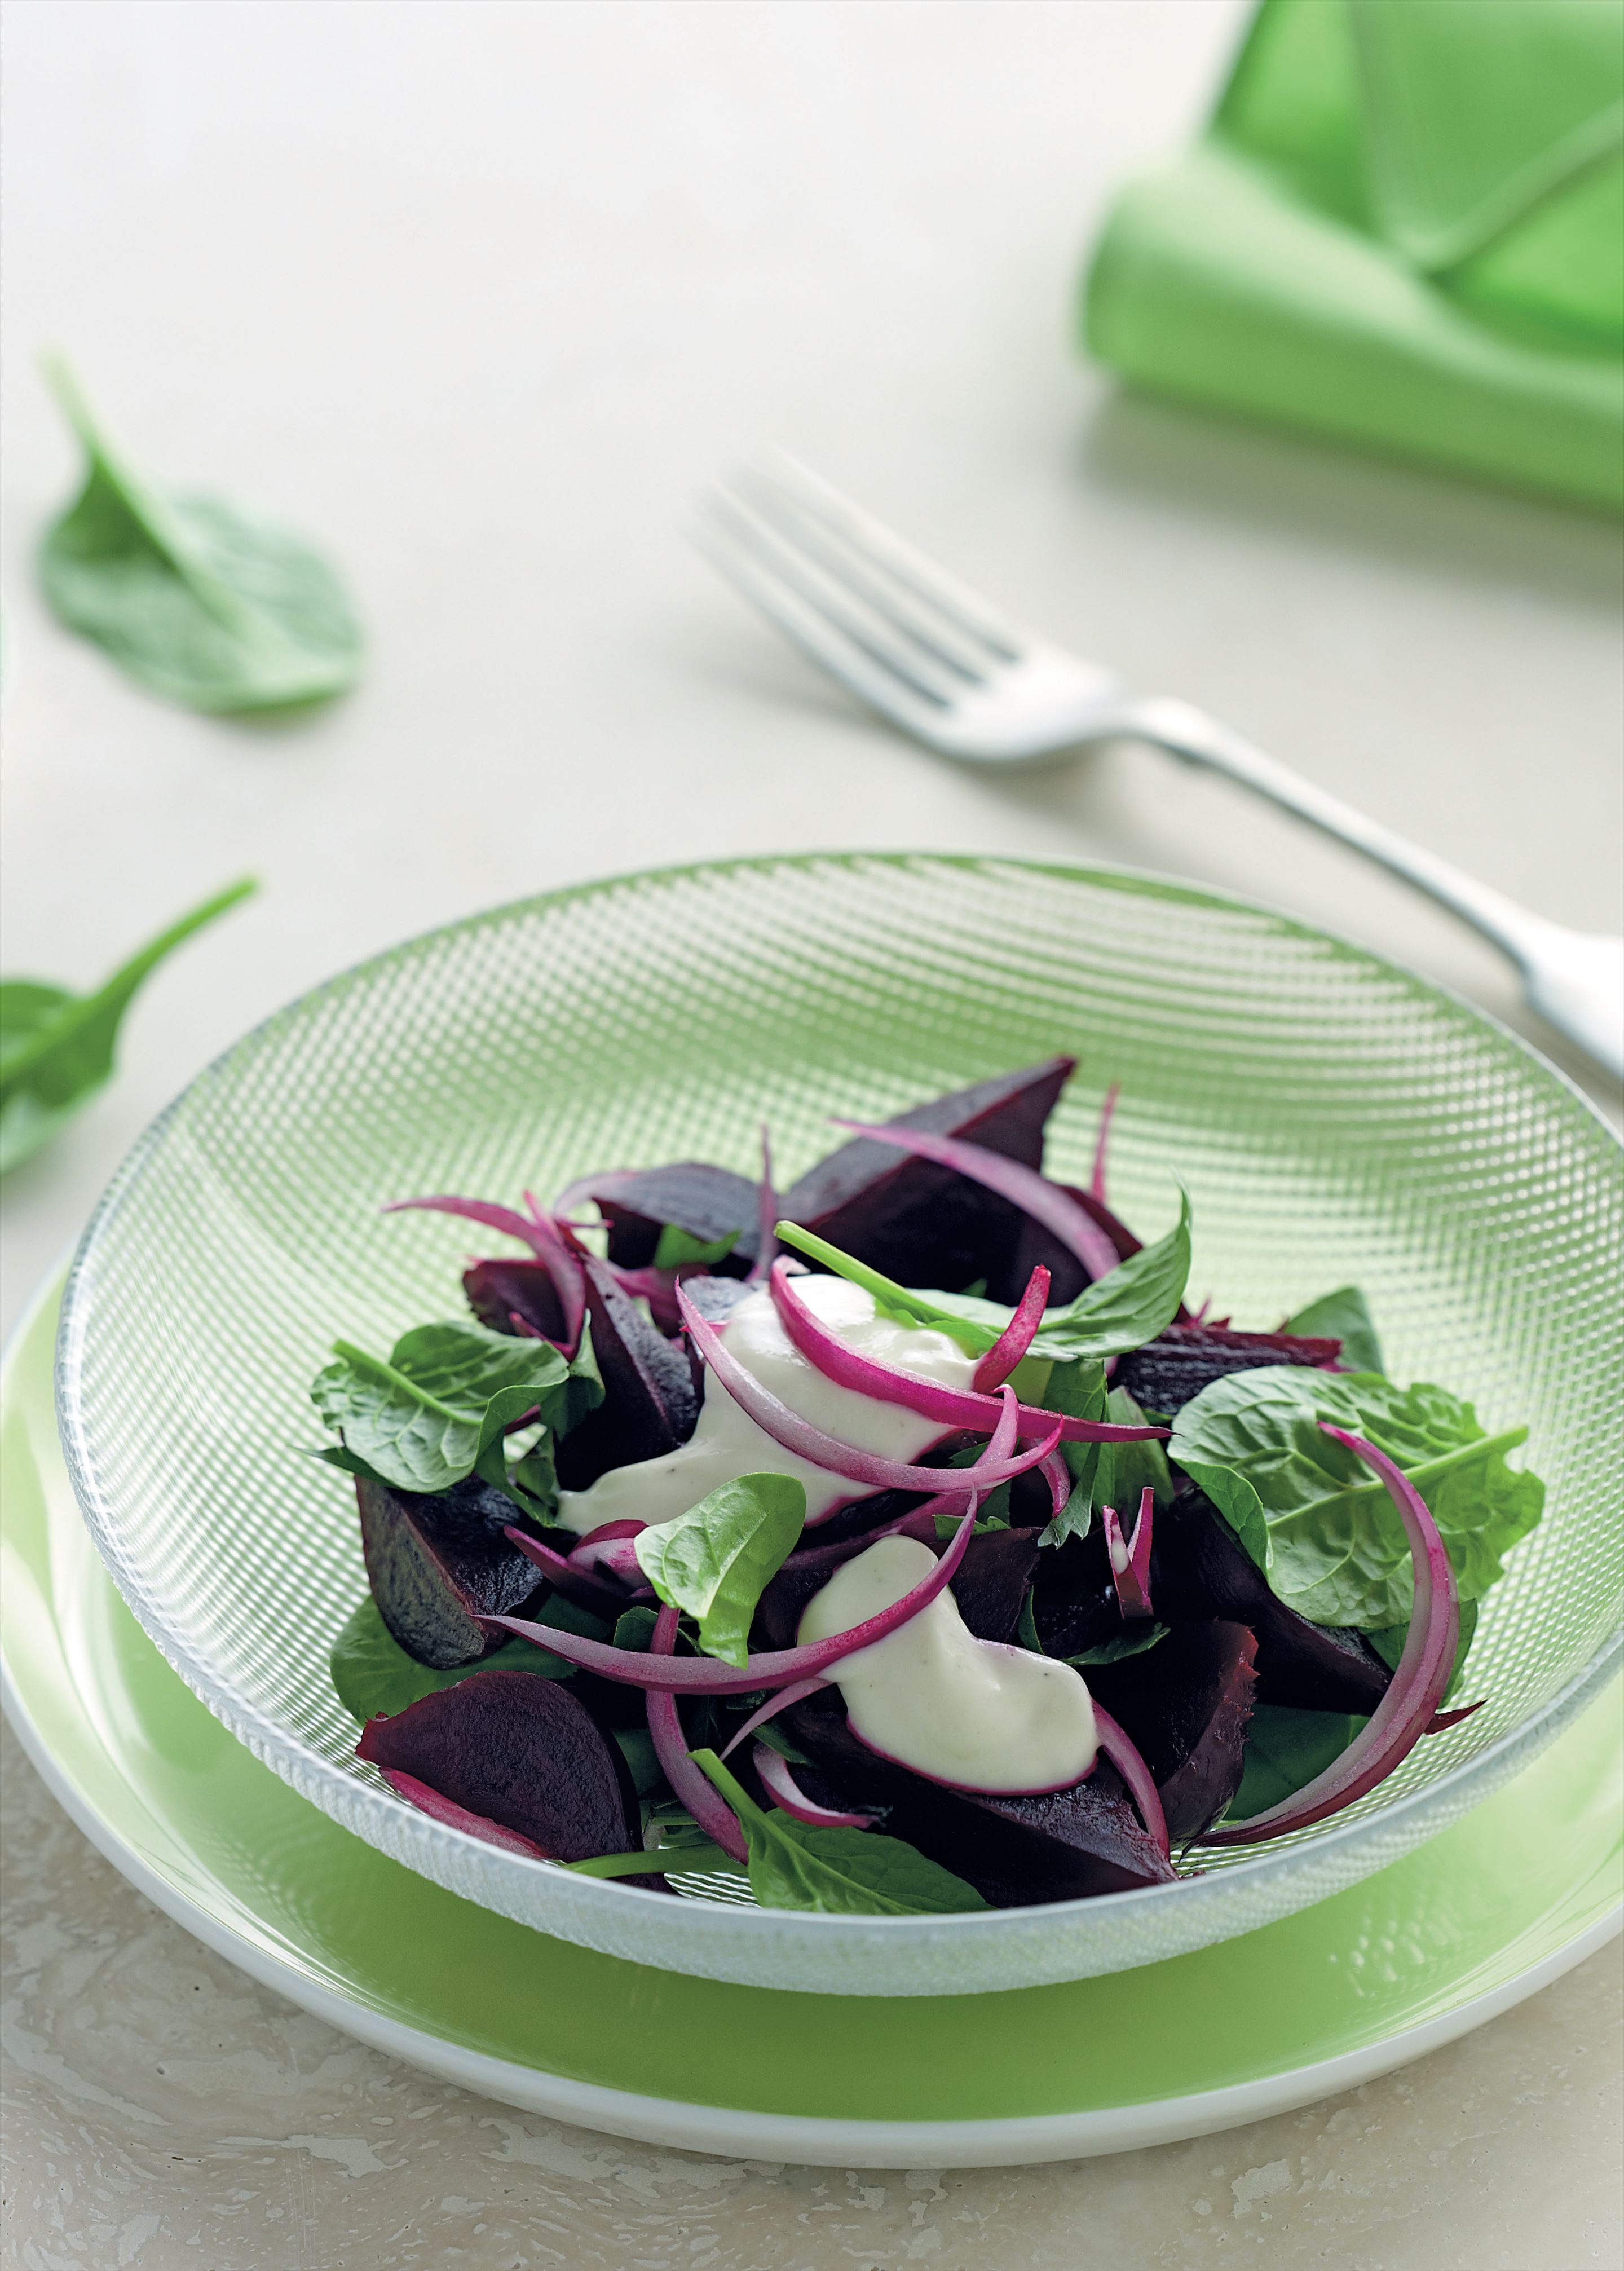 Beetroot, spinach and yoghurt salad